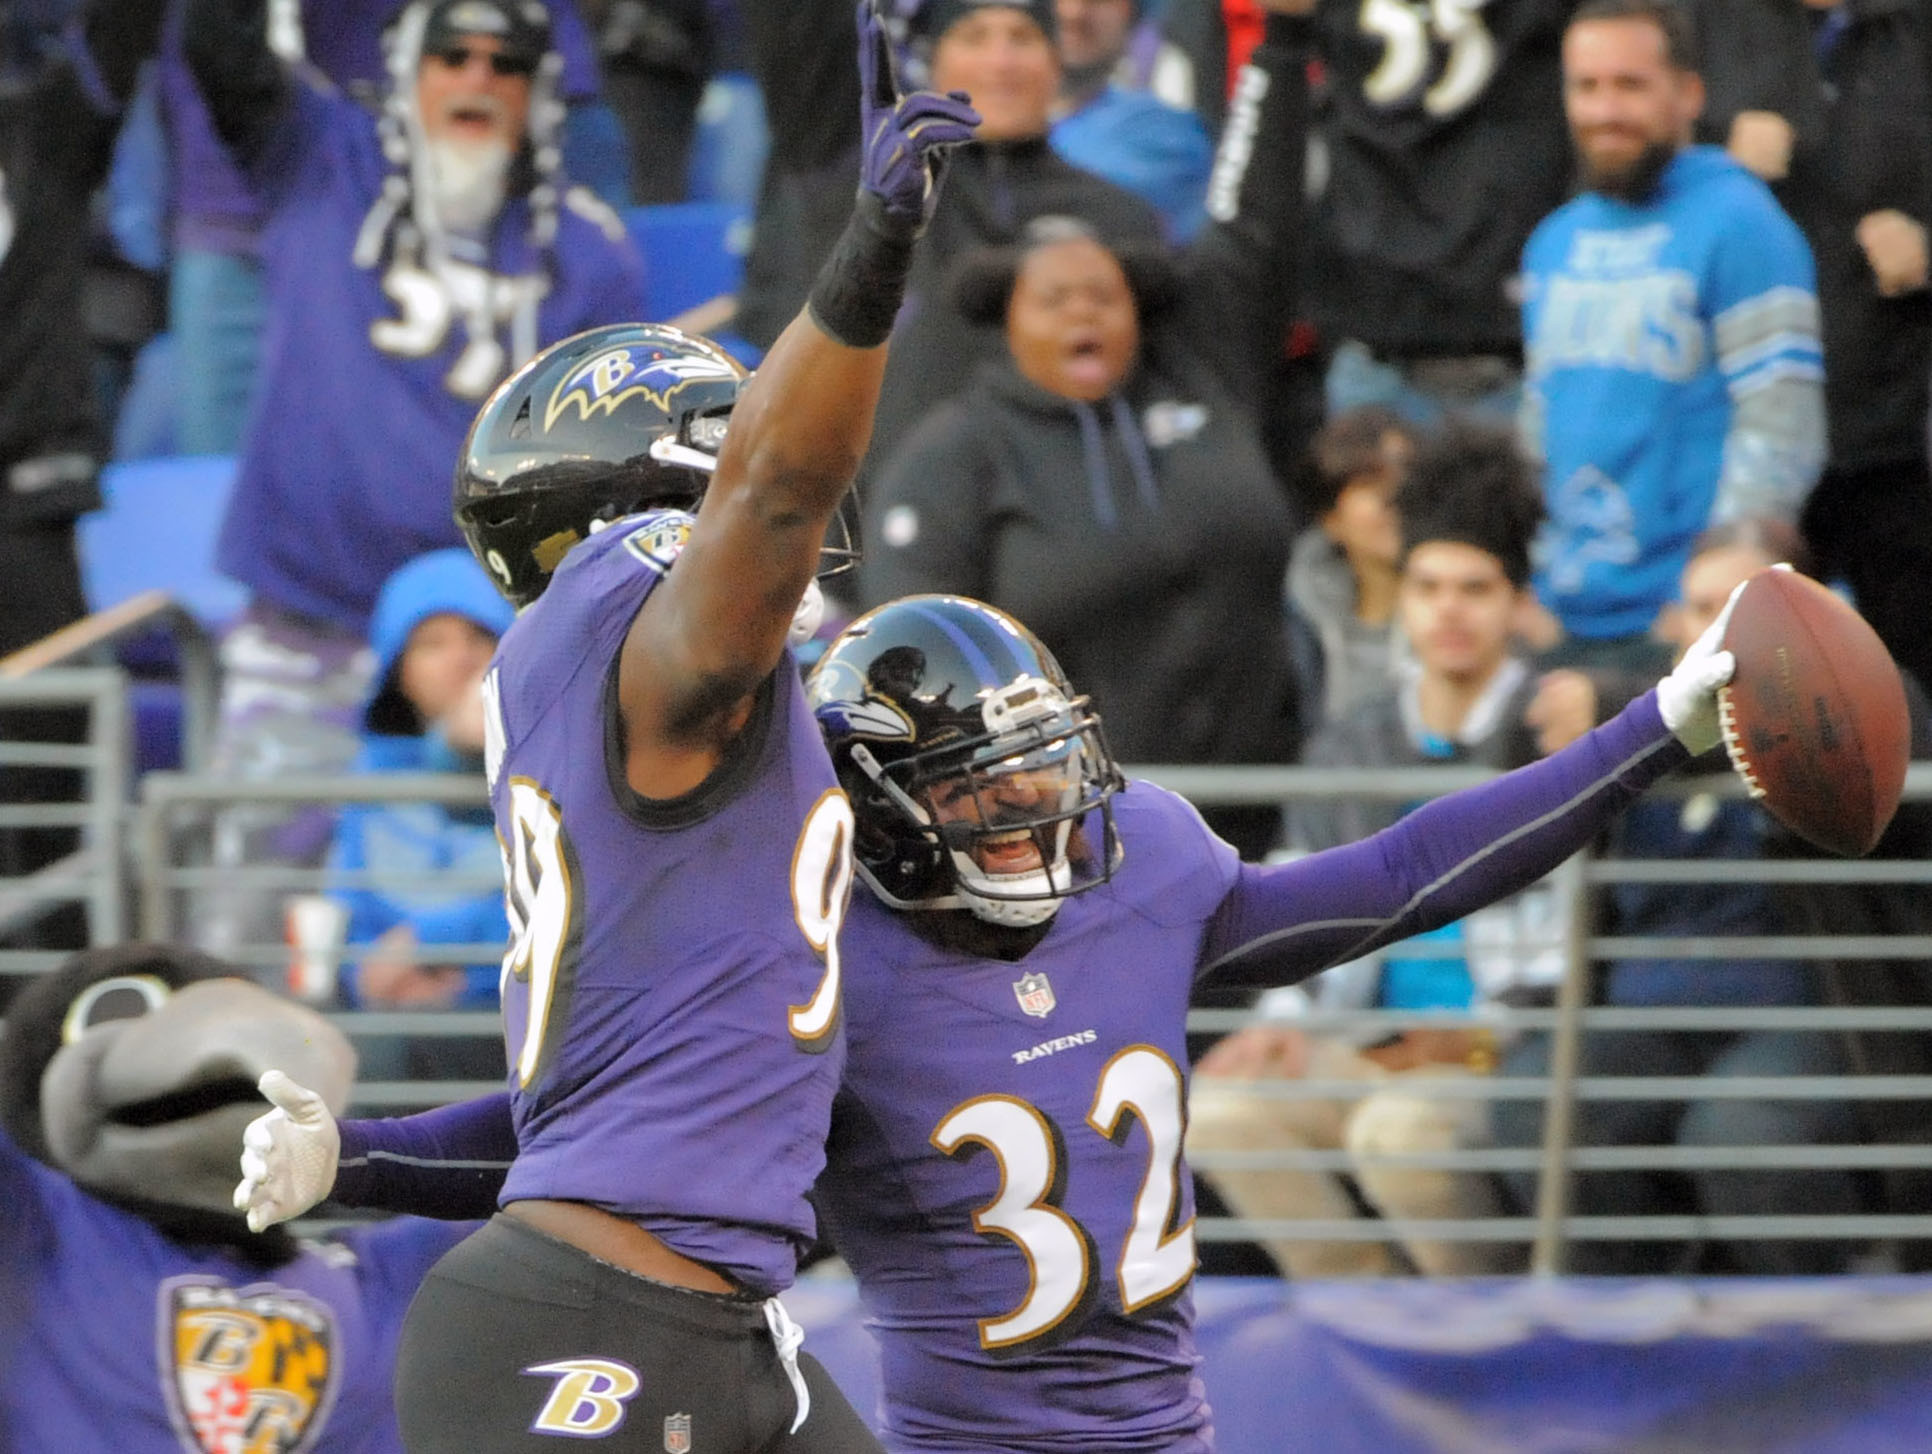 NFL Week 13: Ravens vs. Lions